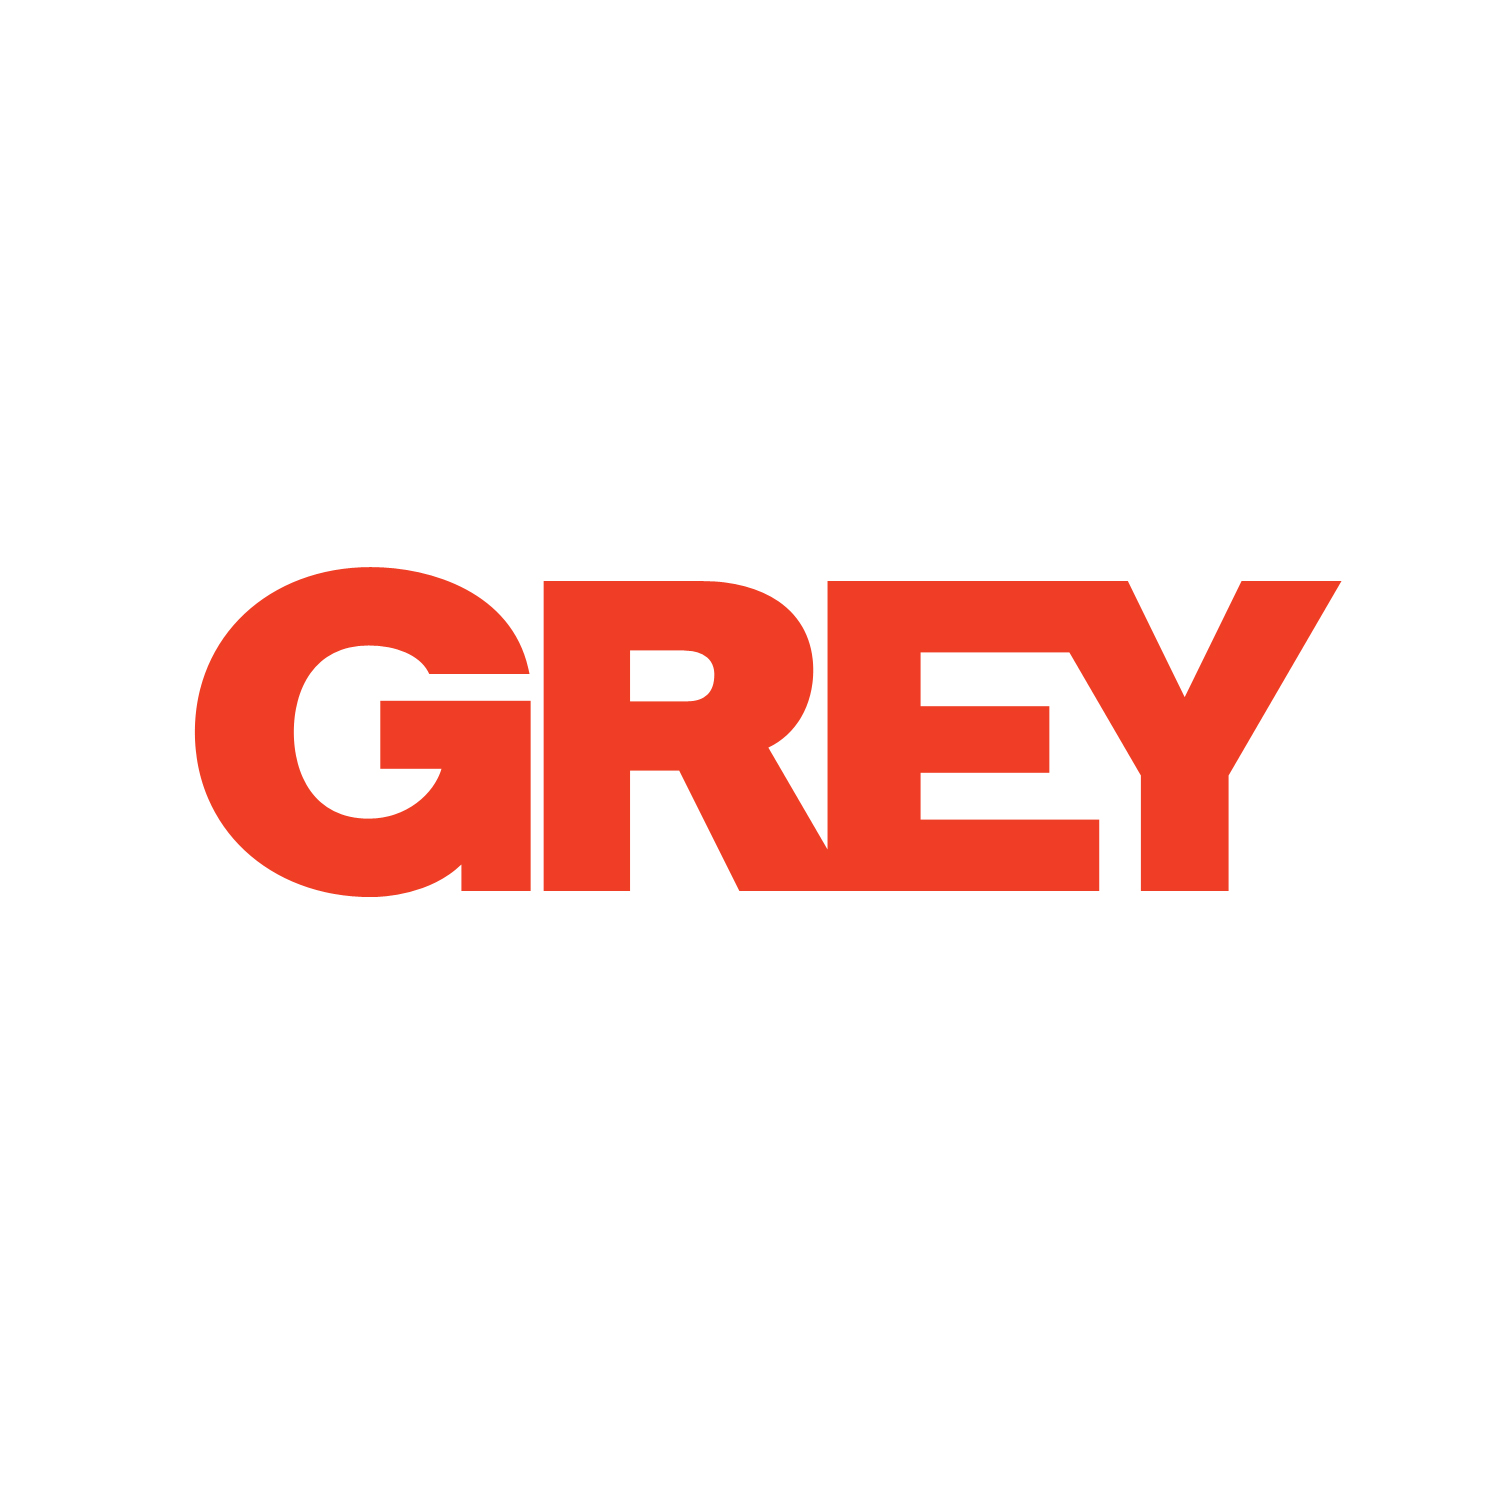 About | GREY